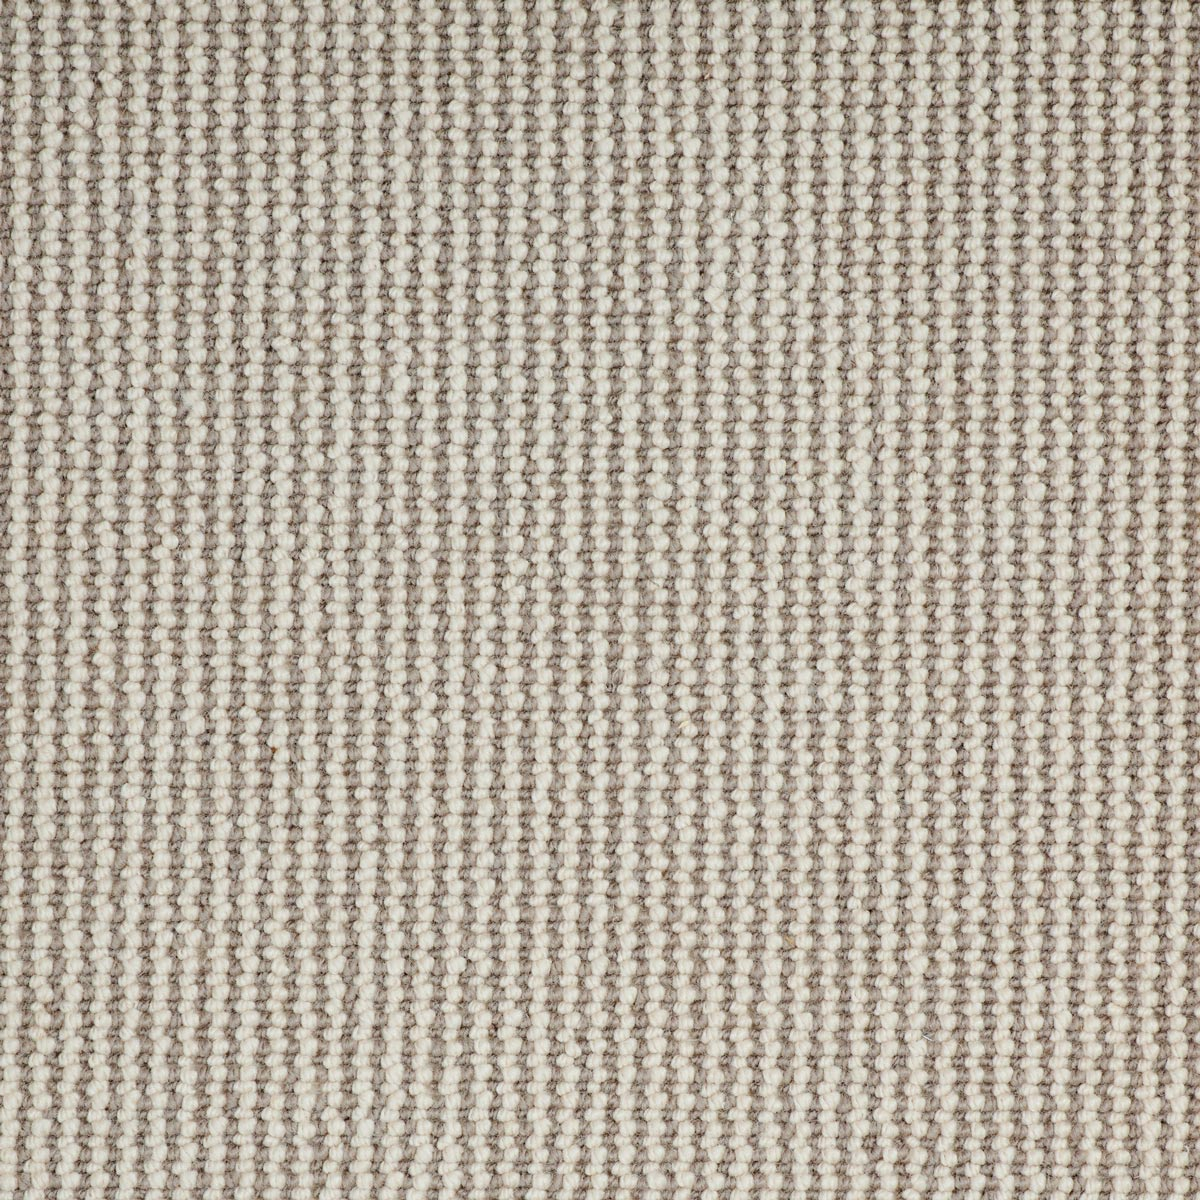 bundy_wool-viscose_broadloom_patterson-flynn-martin_pfm